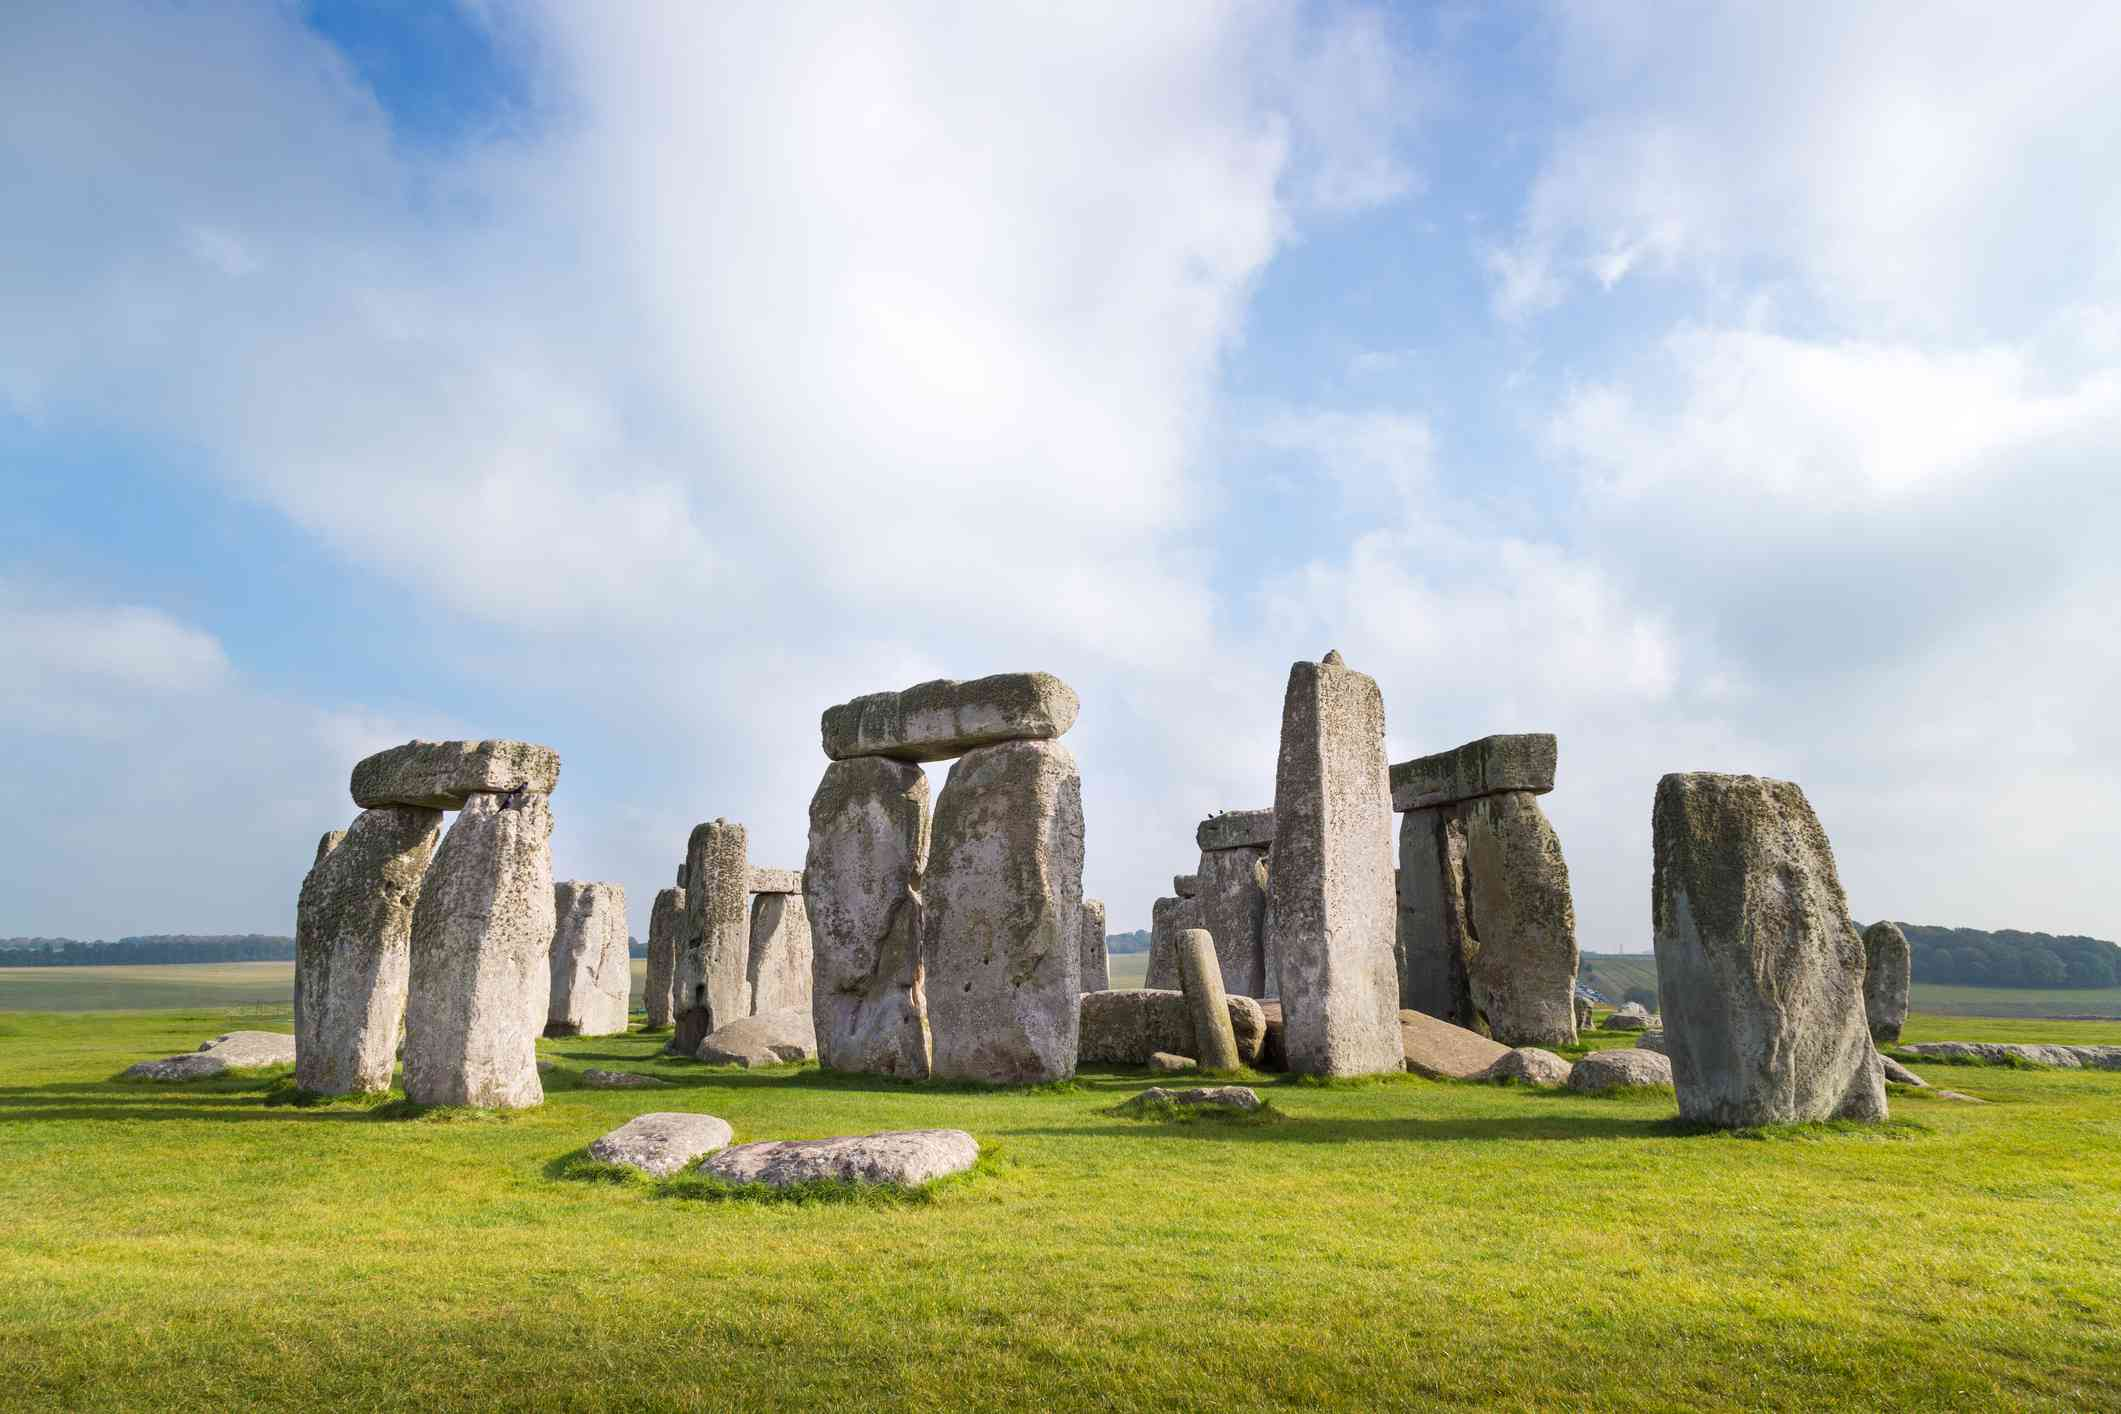 Large ancient standing stone monuments in a grassy field